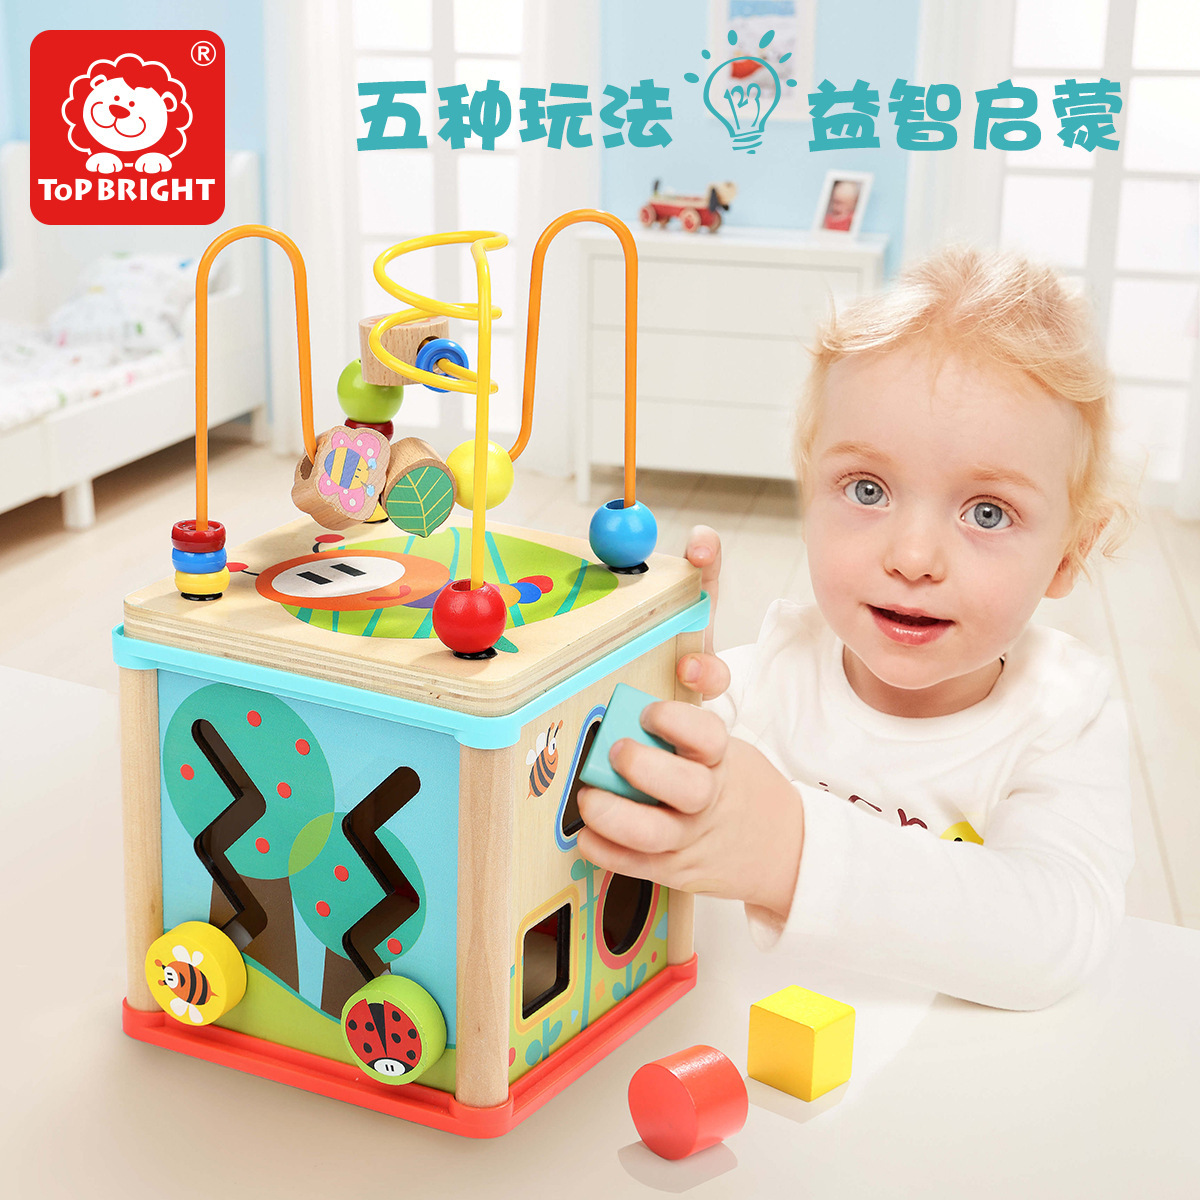 [Micro For] TOPBRIGHT 5-in-1 Tetrahedral Treasure Chest Baby Educational Toy Aged 1-2 Years Bead-stringing Toy Beaded Bracelet